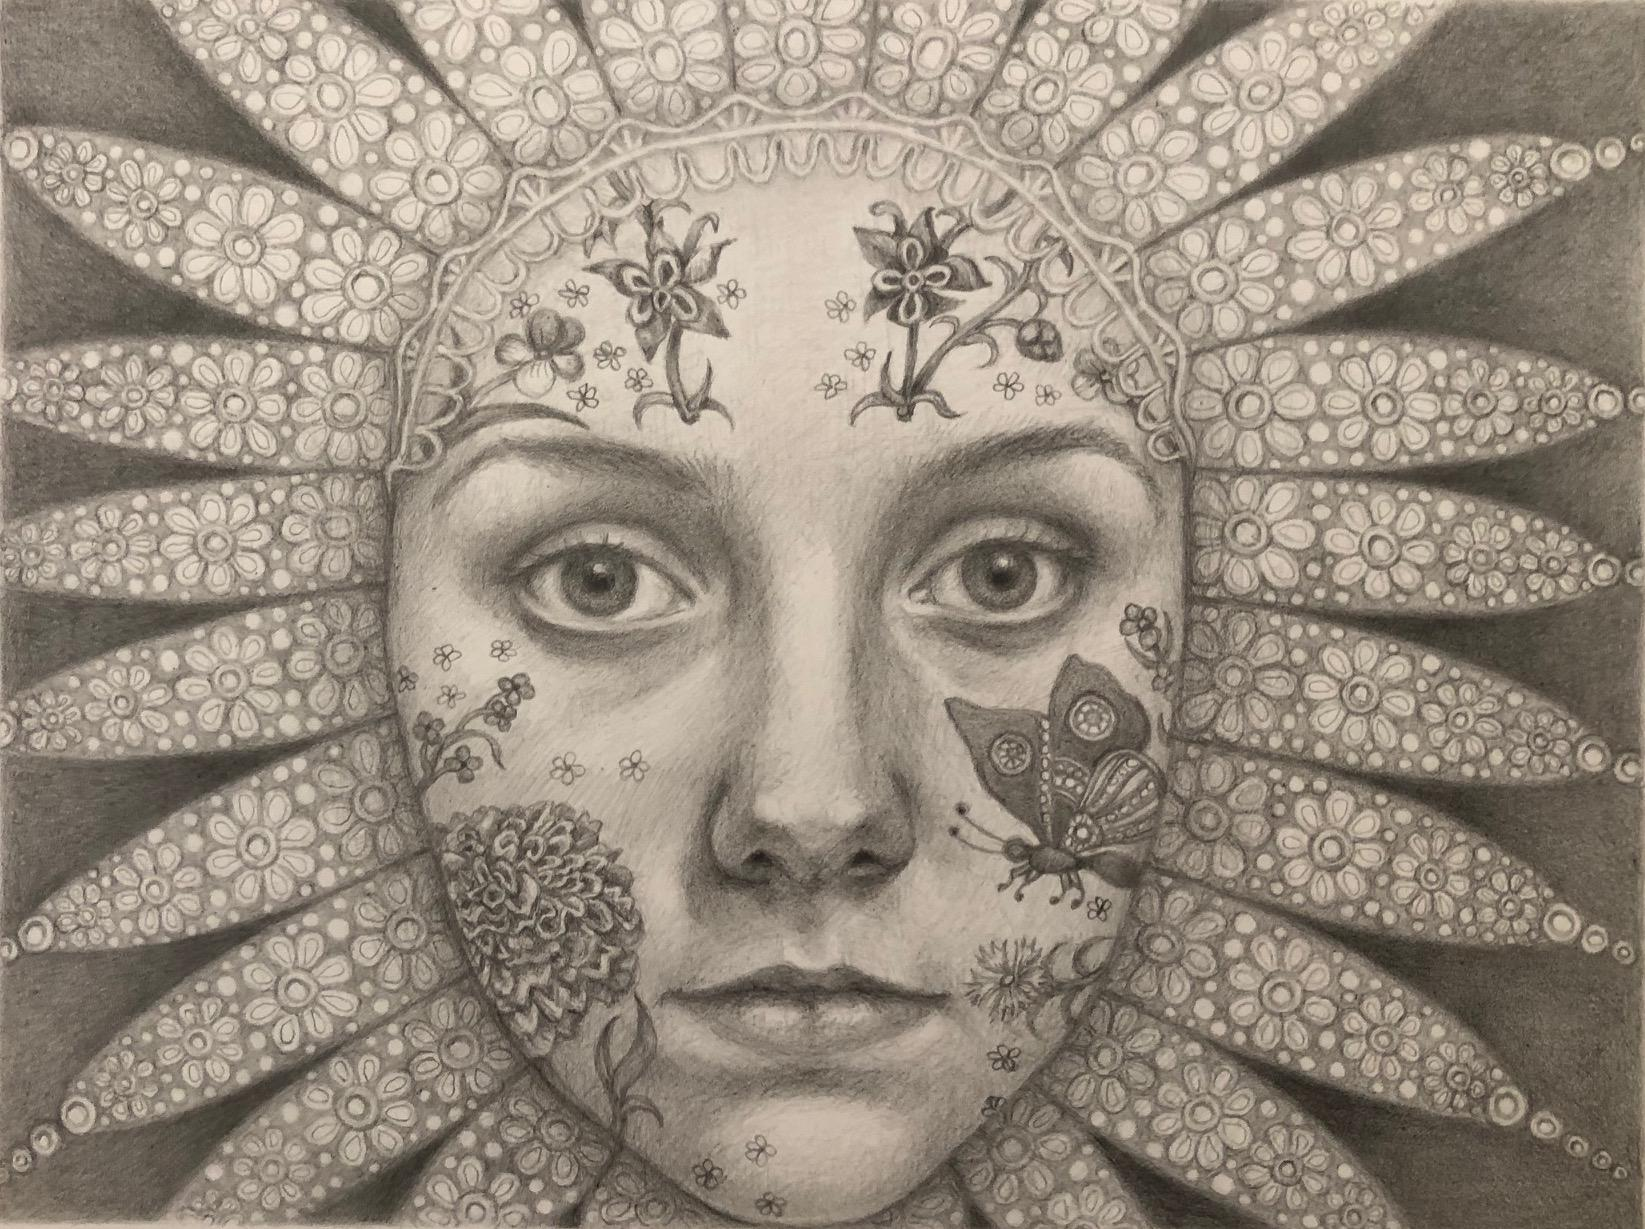 PARADISE SEEKER - pencil drawing - from Okada's 'Neo Flower Children' series